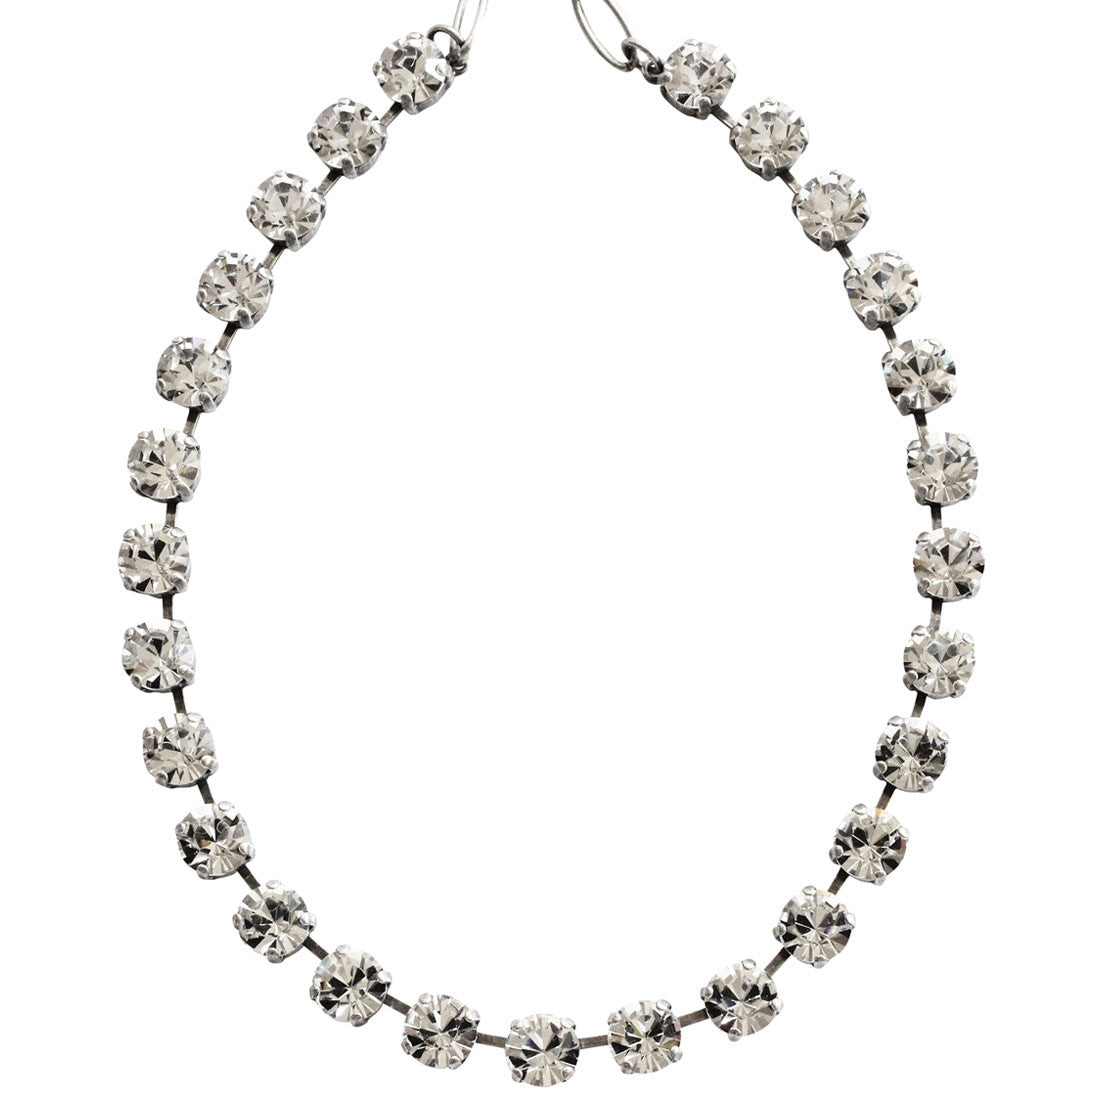 "Mariana Silver Plated Classic Shapes Swarovski Crystal Necklace, 18"" On A Clear Day 3252 001"